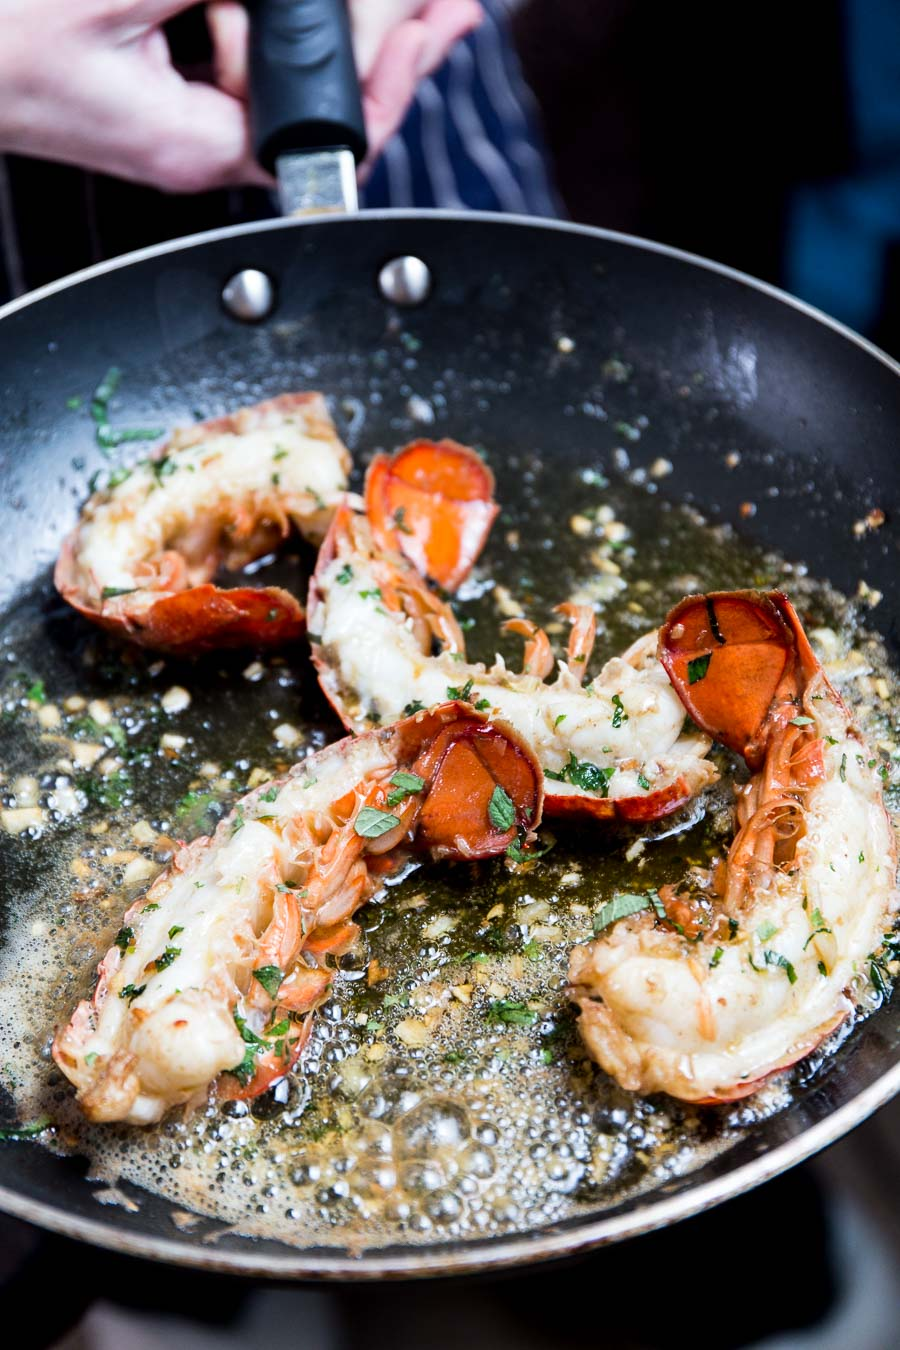 A close shot of someone holding a frying pan containing cooked lobster tails with bubbling garlic butter and green herbs